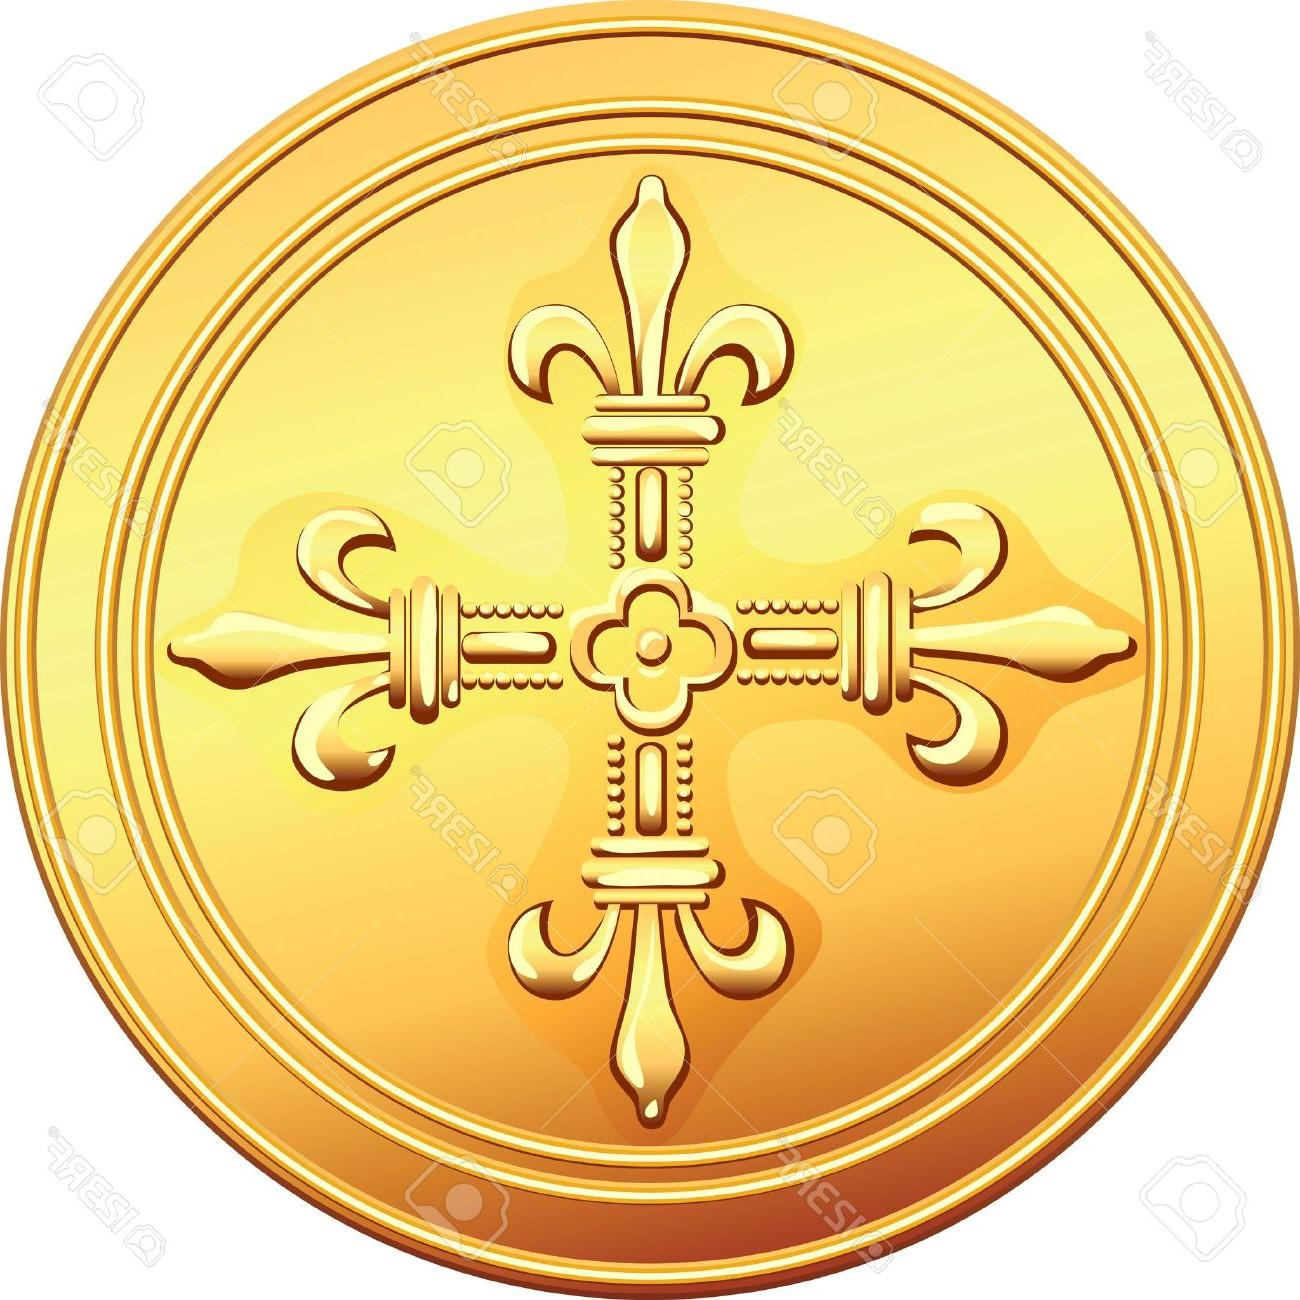 Top Pirate Gold Coins Vector Image » Free Vector Art, Images.